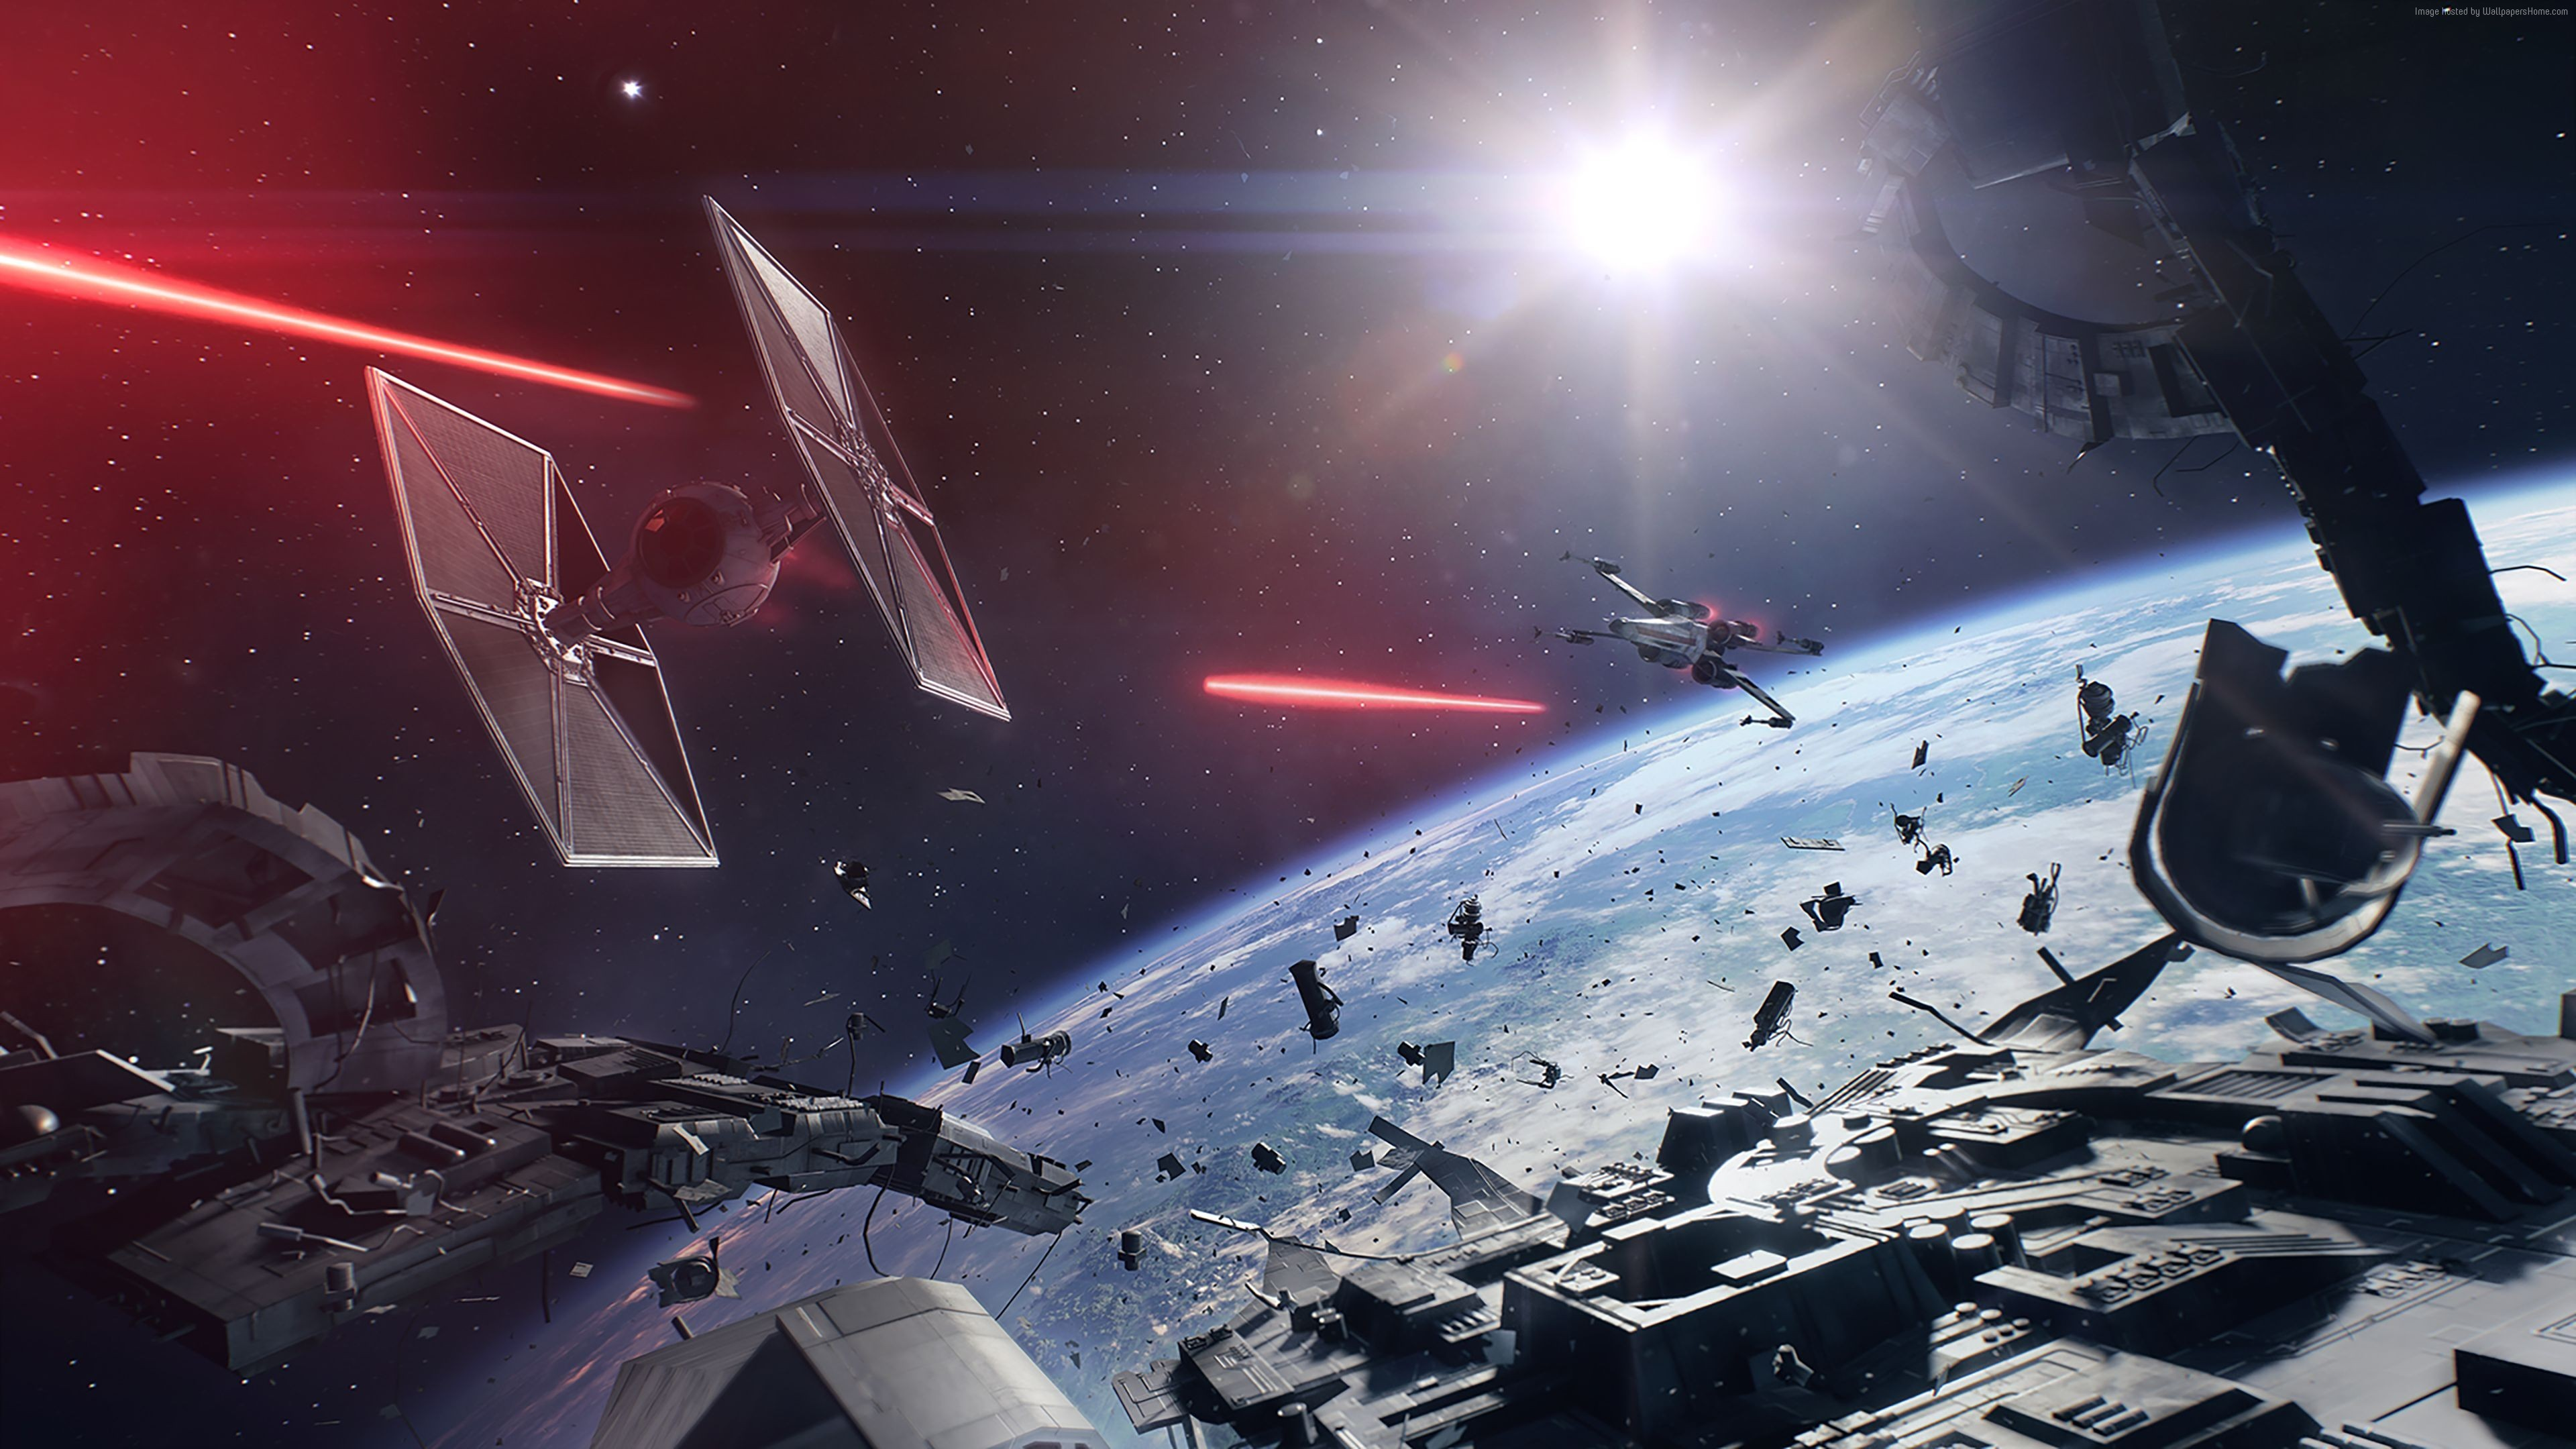 3840x2160 Star Wars Battlefront II 4K Wallpaper